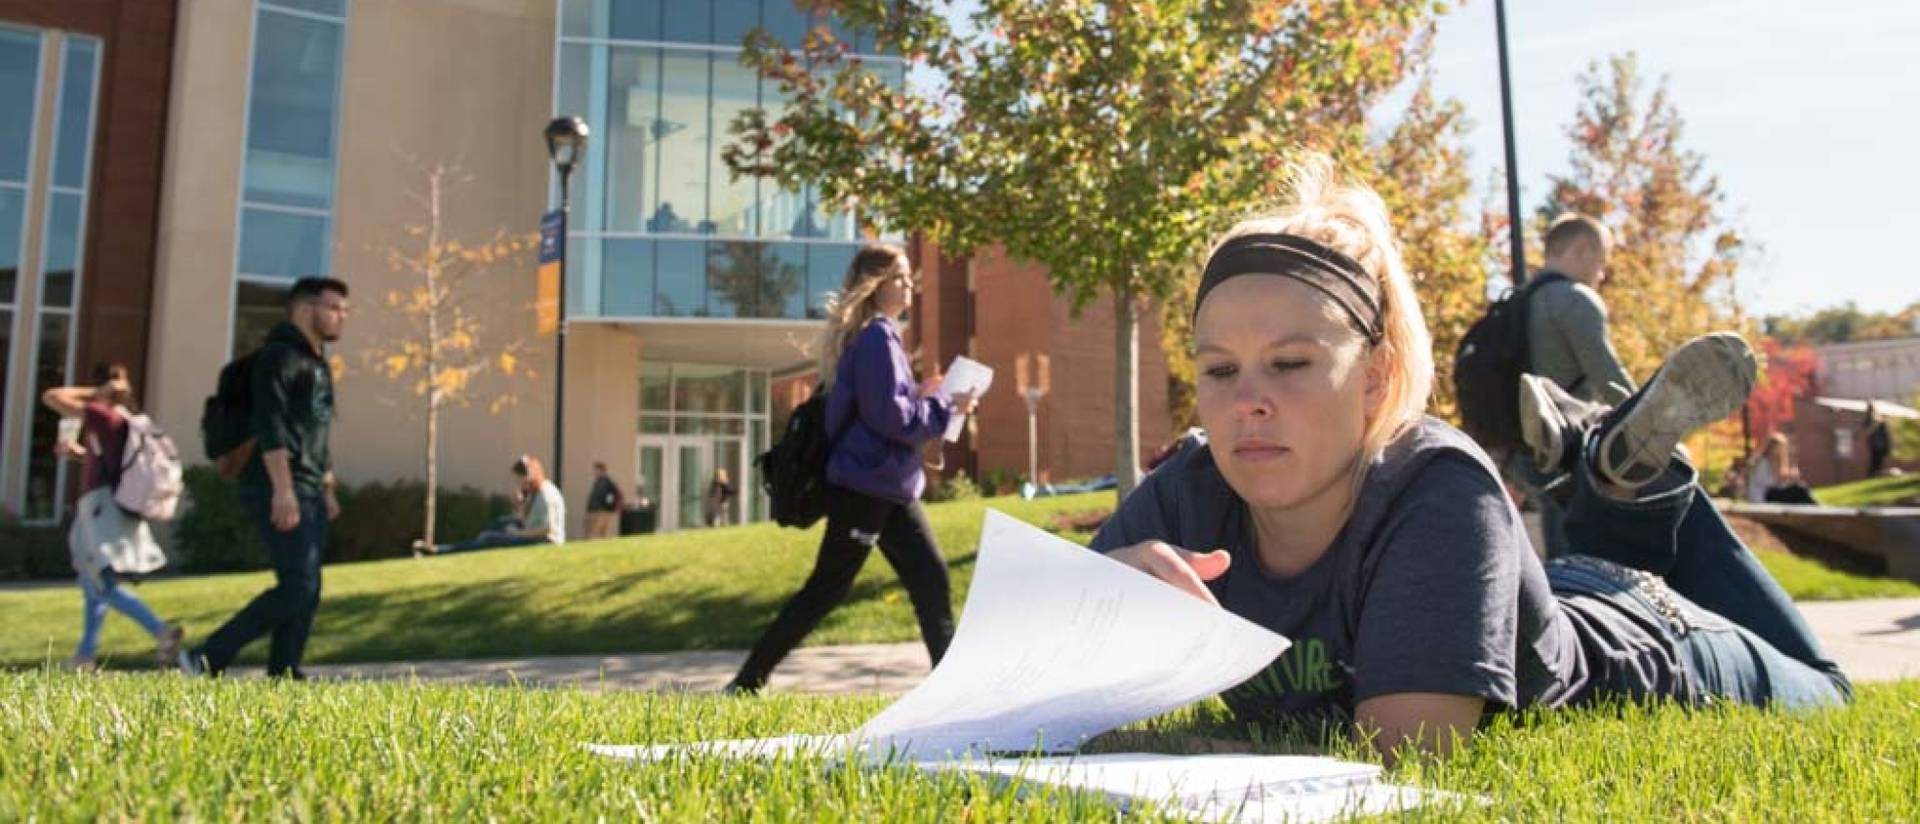 Students study and make their way around lower campus on a warm fall day.